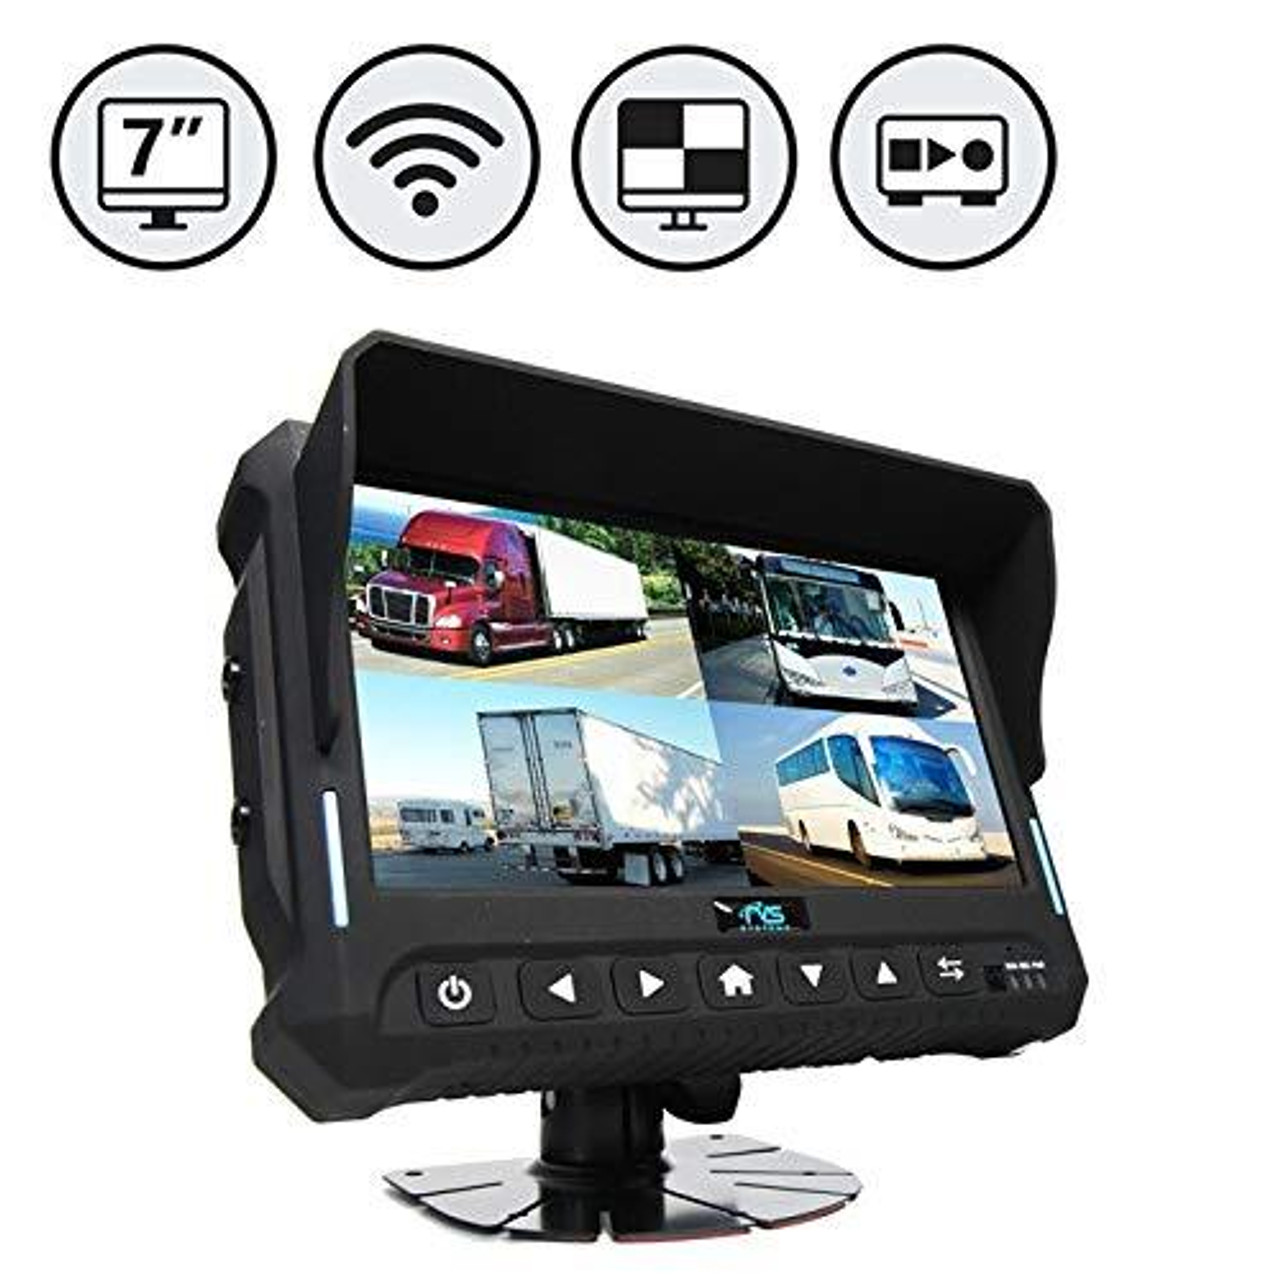 """Wireless 7"""" Quad View Monitor with Built-in DVR"""